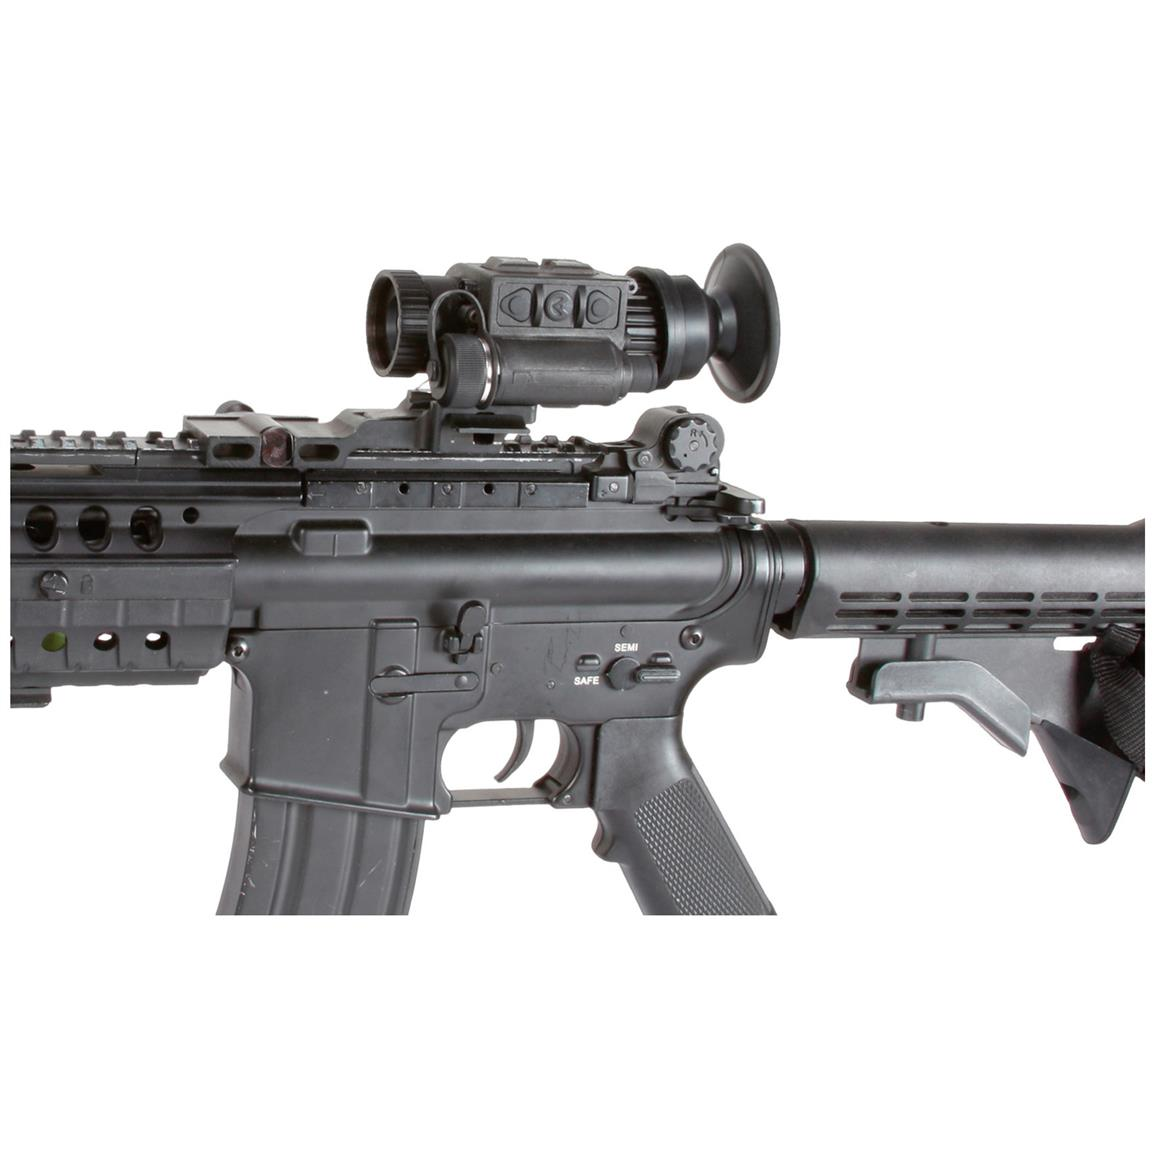 The mini-rail design allows for mounting on a wide variety of in-service head mounts, helmet mounts, reflex cameras, digital video recorders, and MIL-STD-1913 weapon rail systems using the optional quick-release interfaces